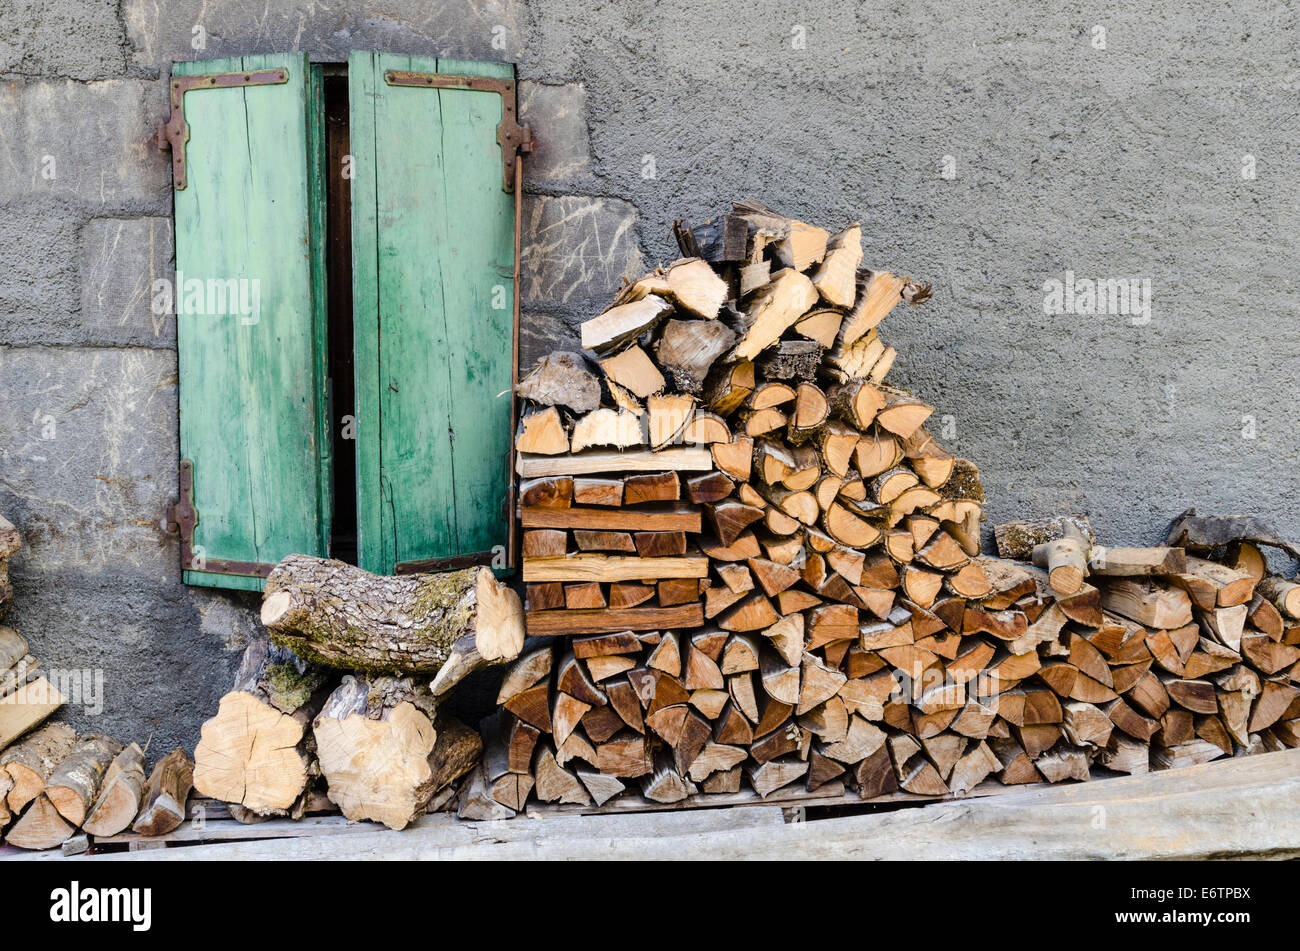 Stack of firewood outside a house - Stock Image